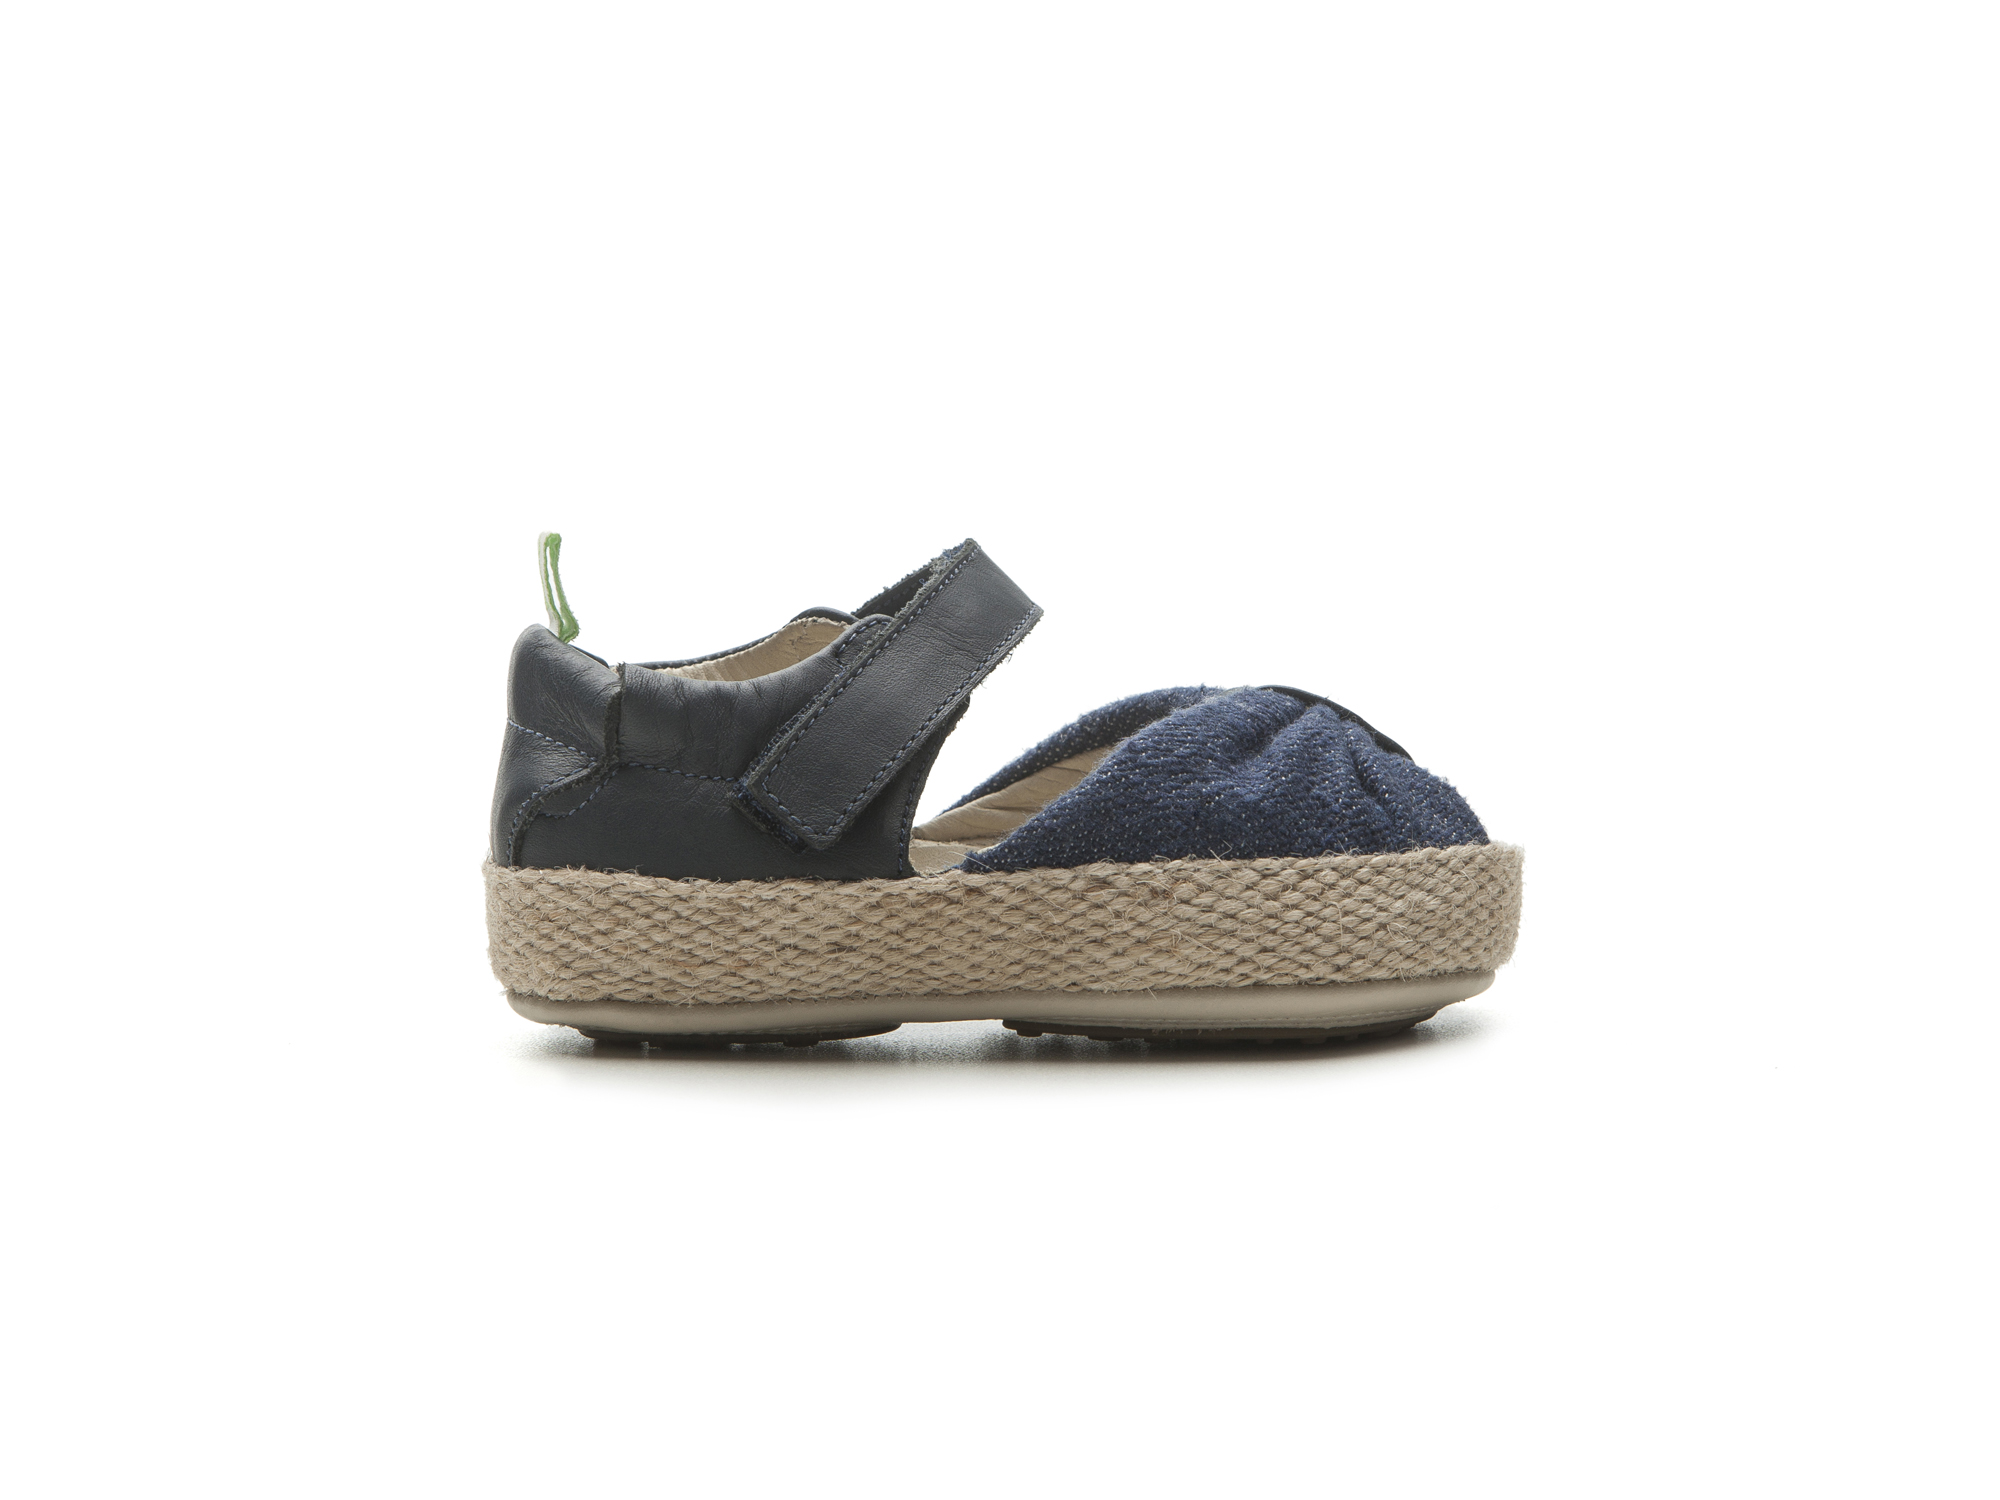 Sandália Coasty Jeans Canvas/ Navy Baby 0 à 2 anos - 2